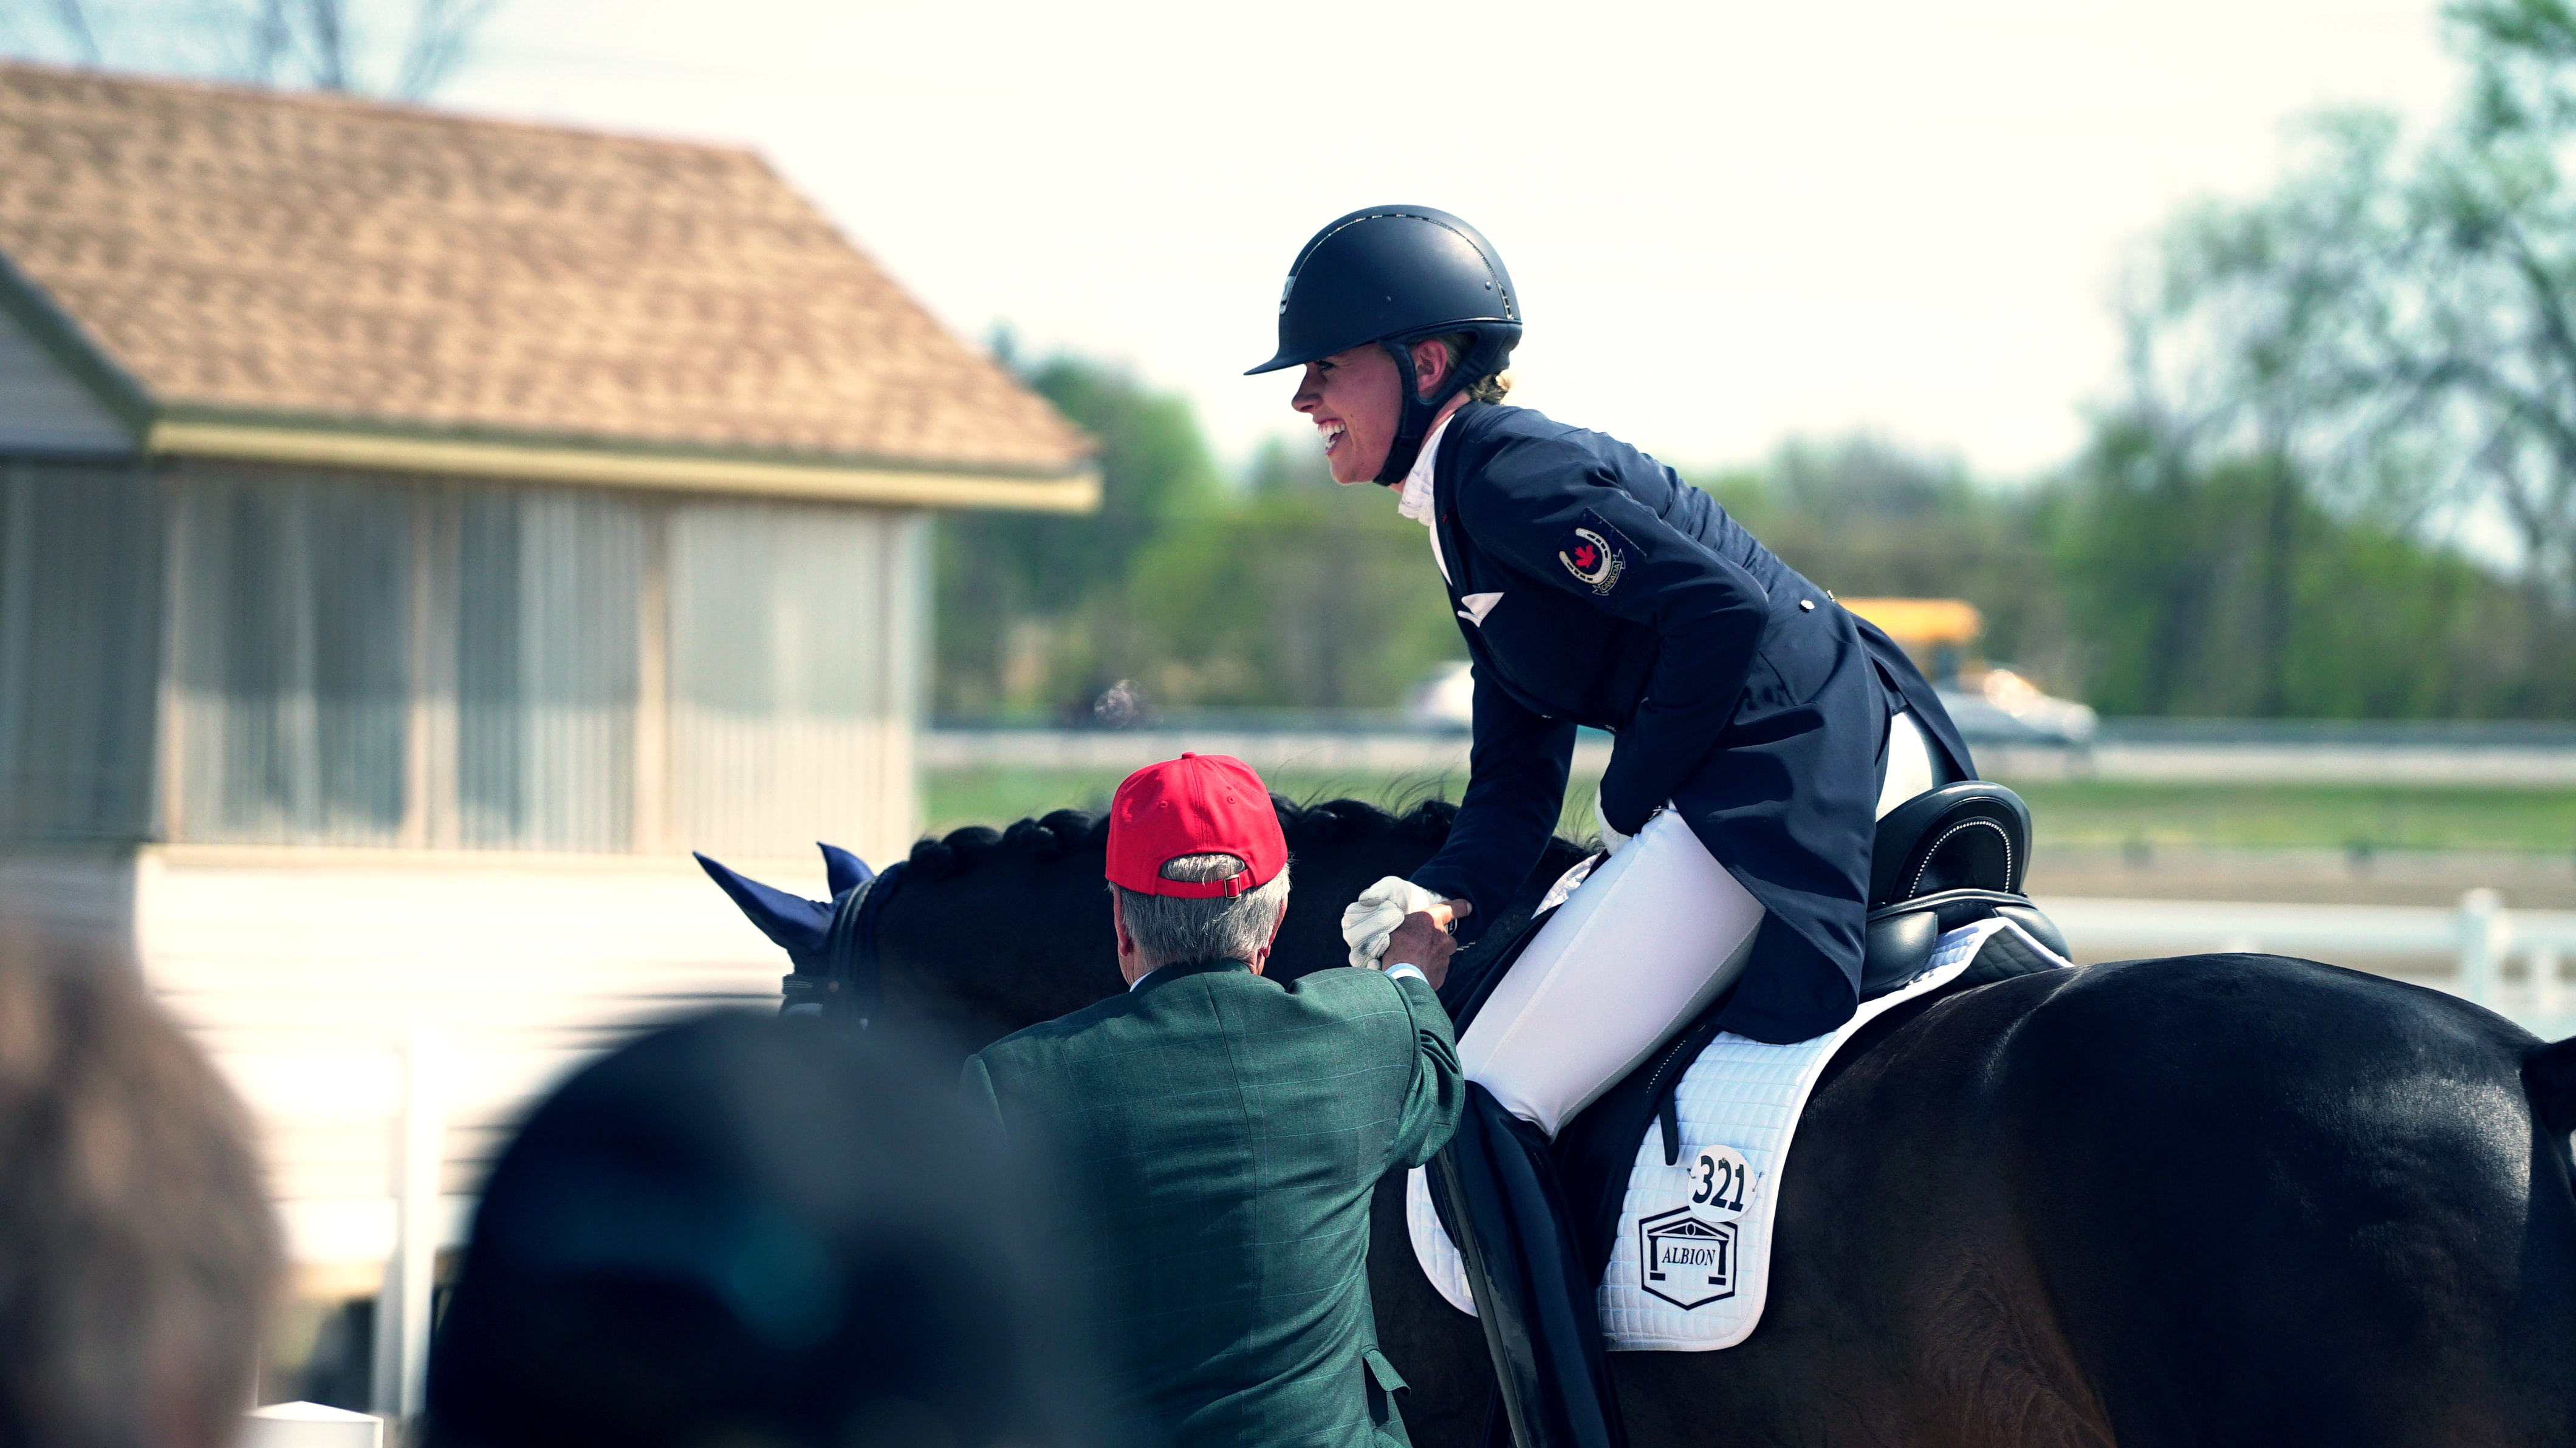 A woman equestrian rider sitting on her horse, talking to her coach in Ottawa